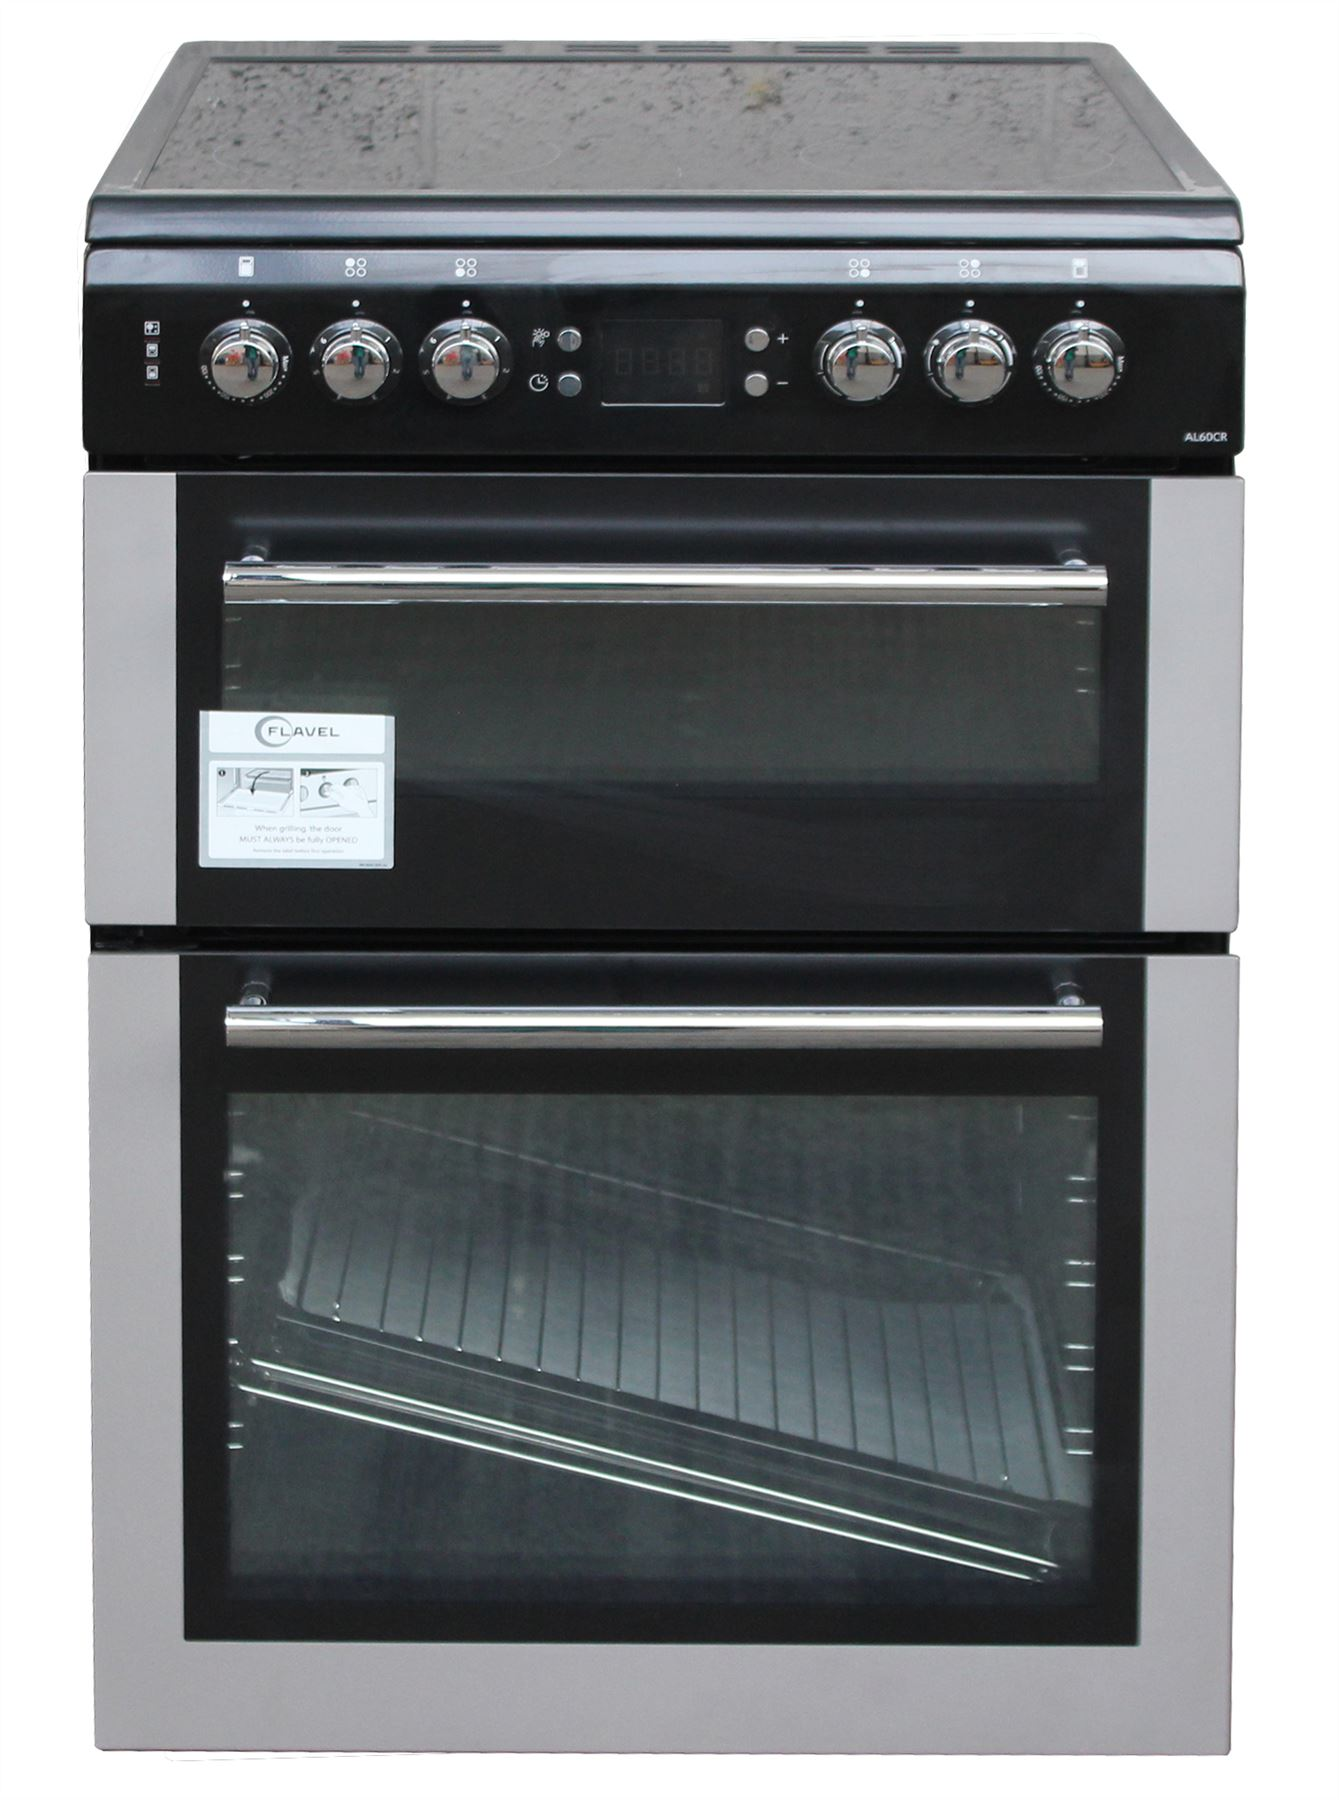 Leisure 60cm Electric Cooker Al60crk Mini Range Double